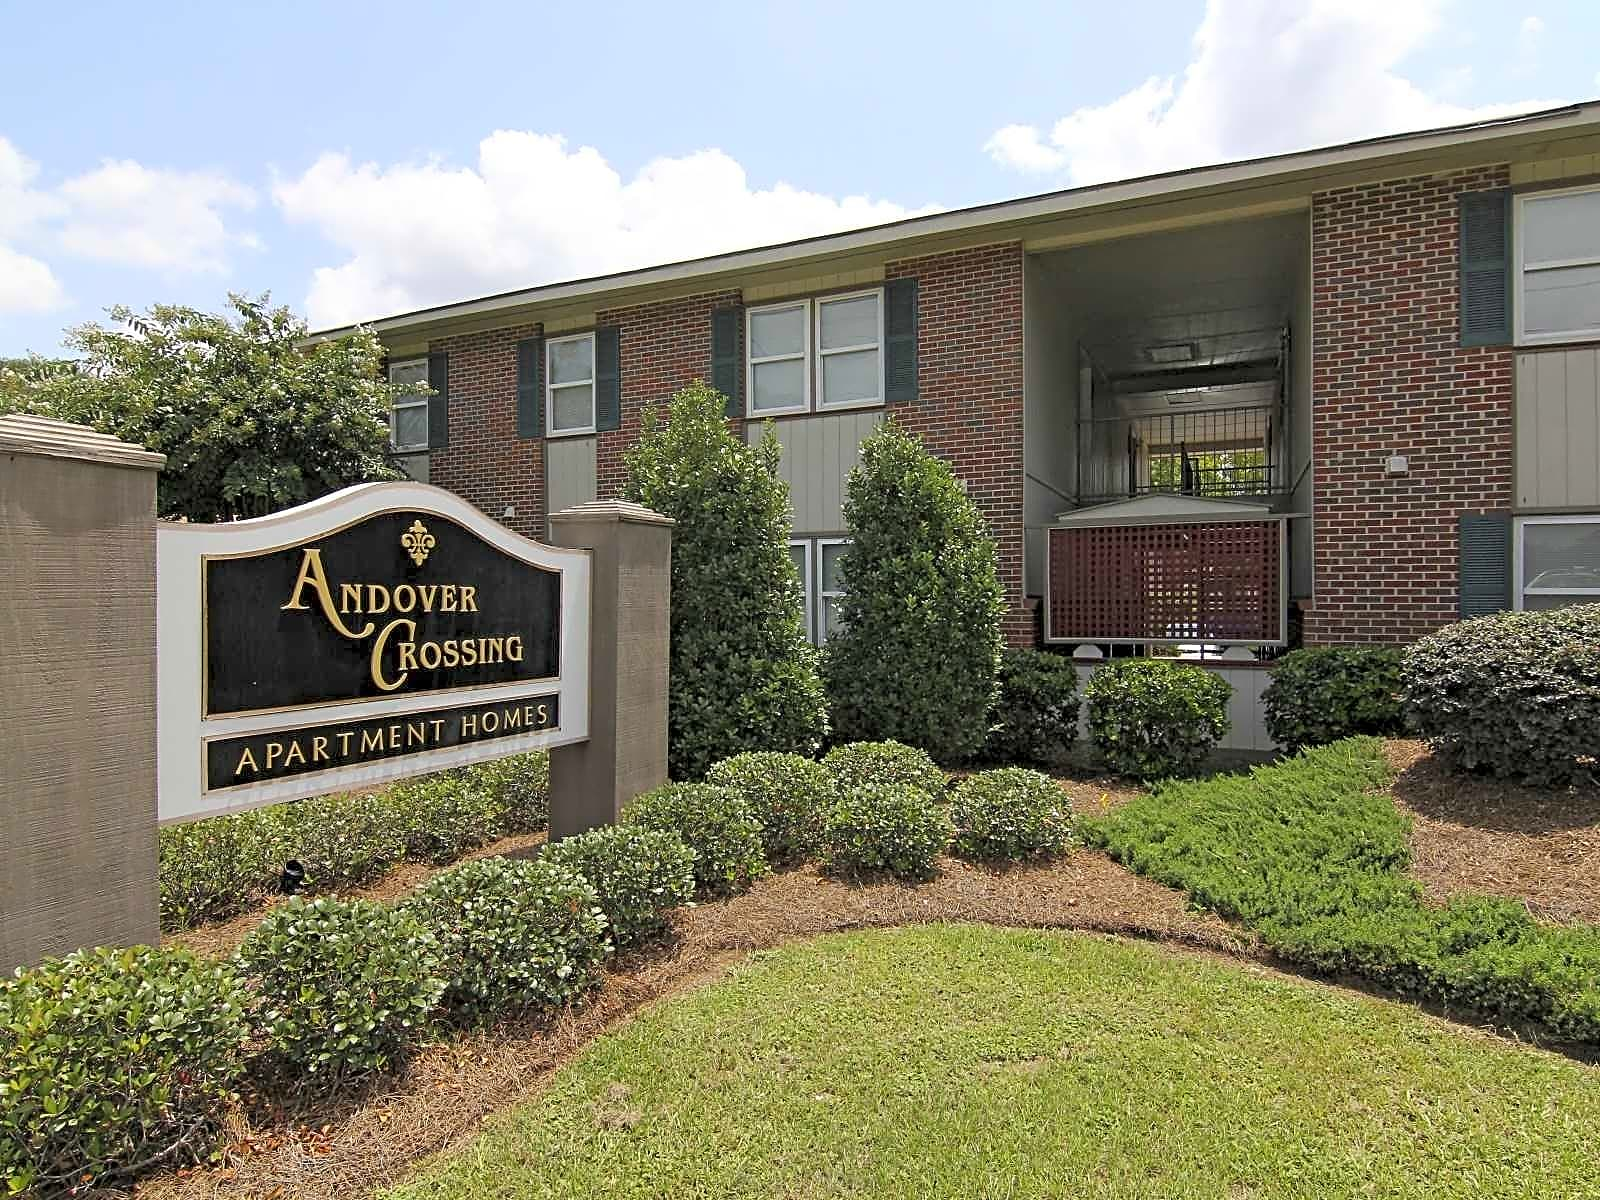 Andover crossing apartments savannah ga 31419 for Apartments near savannah college of art and design